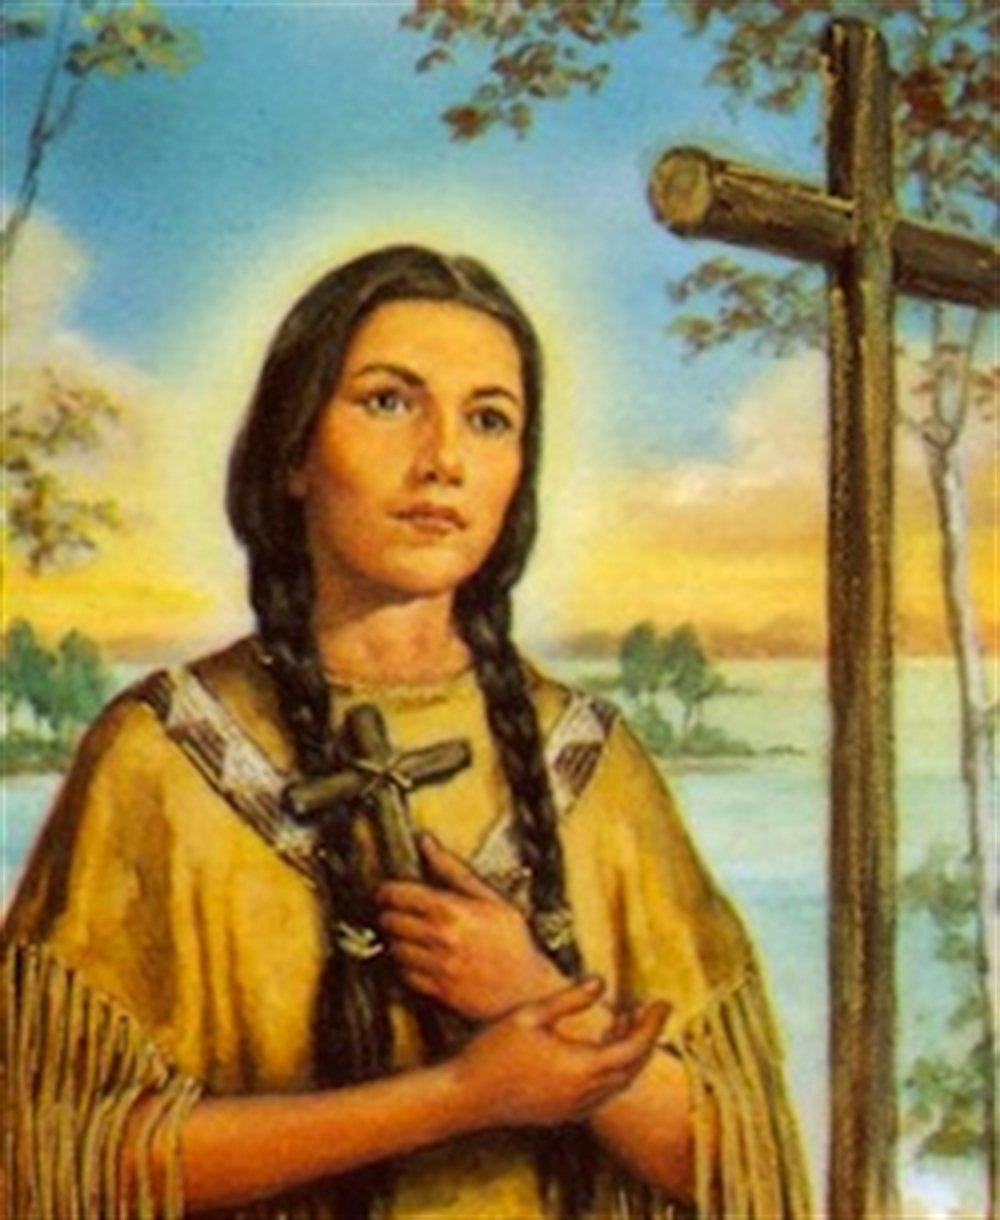 Prayer for the Canonization of KATERI TEKAKWITHA